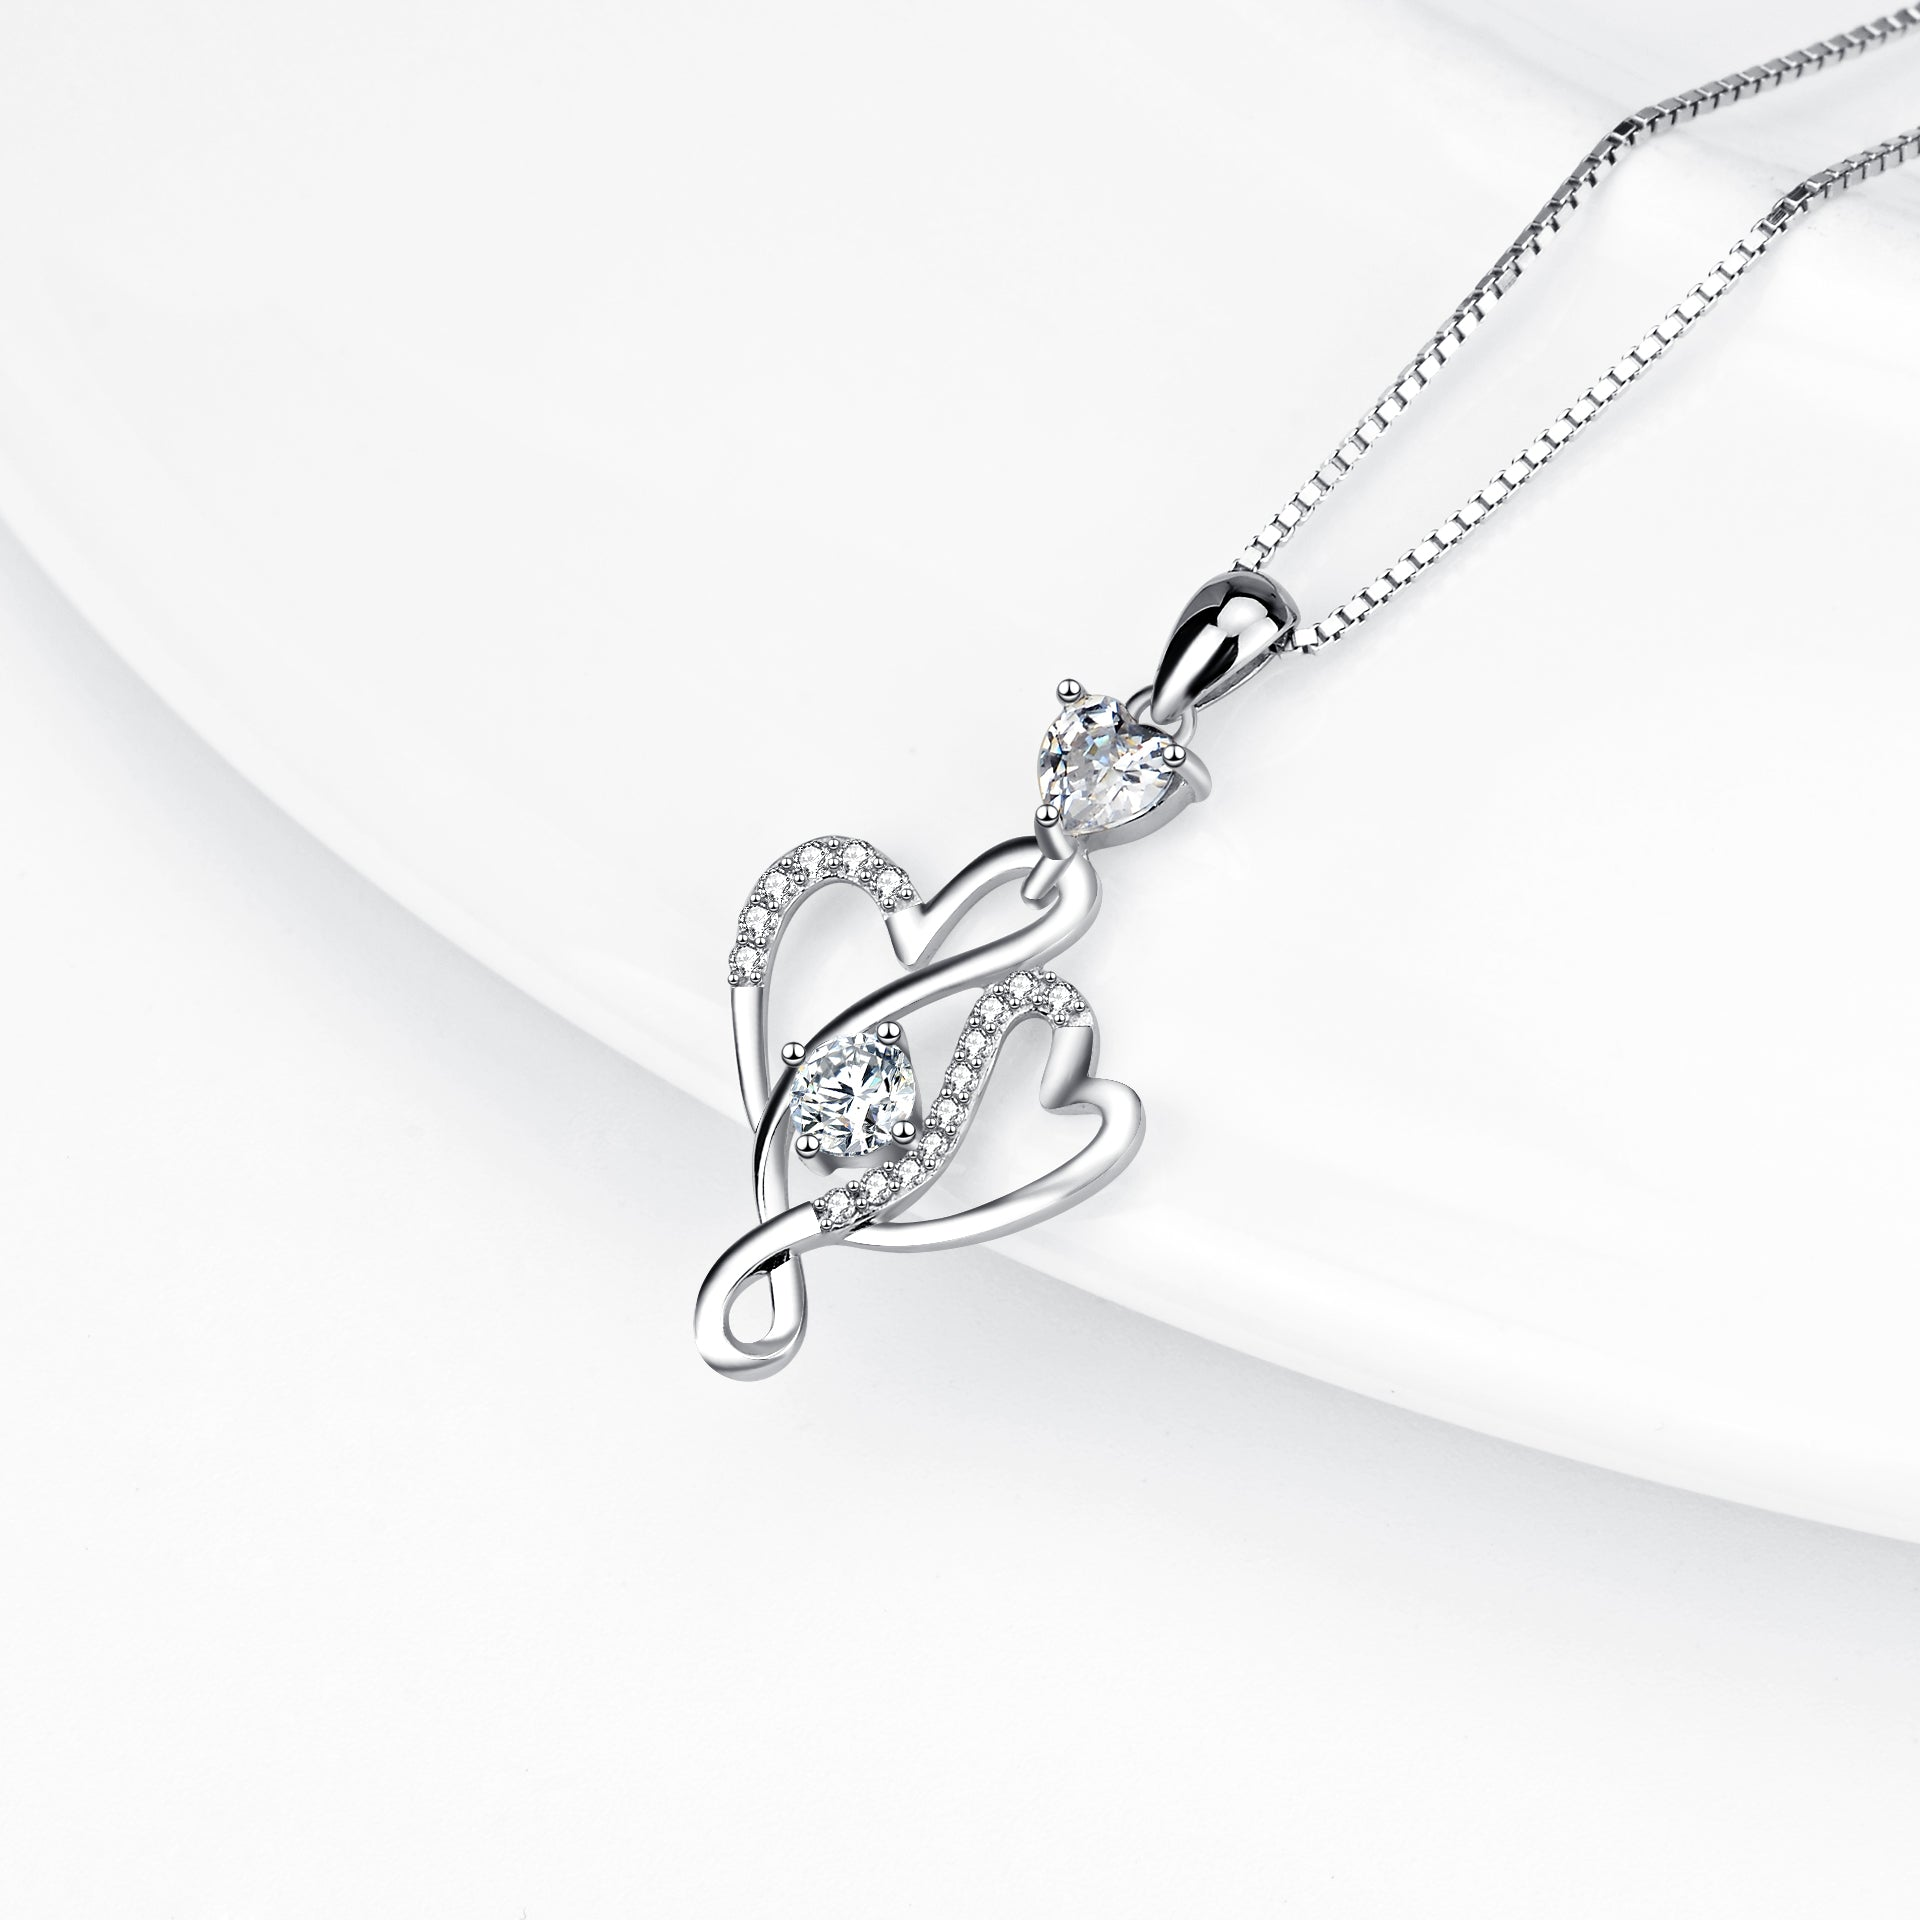 Zirconia micro paved necklace s925 sterling silver sweet hollow heart pendant